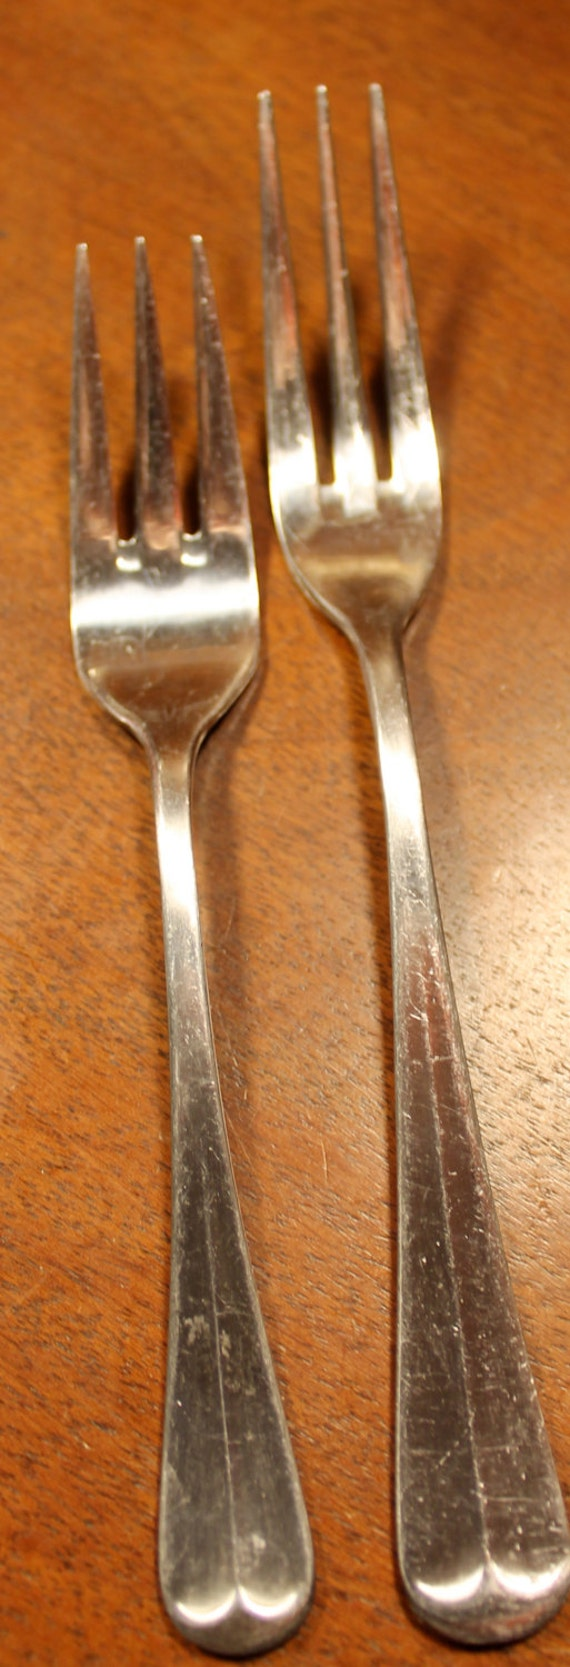 Vintage Flatware from Northland Stainless in POST by AtomicHoliday